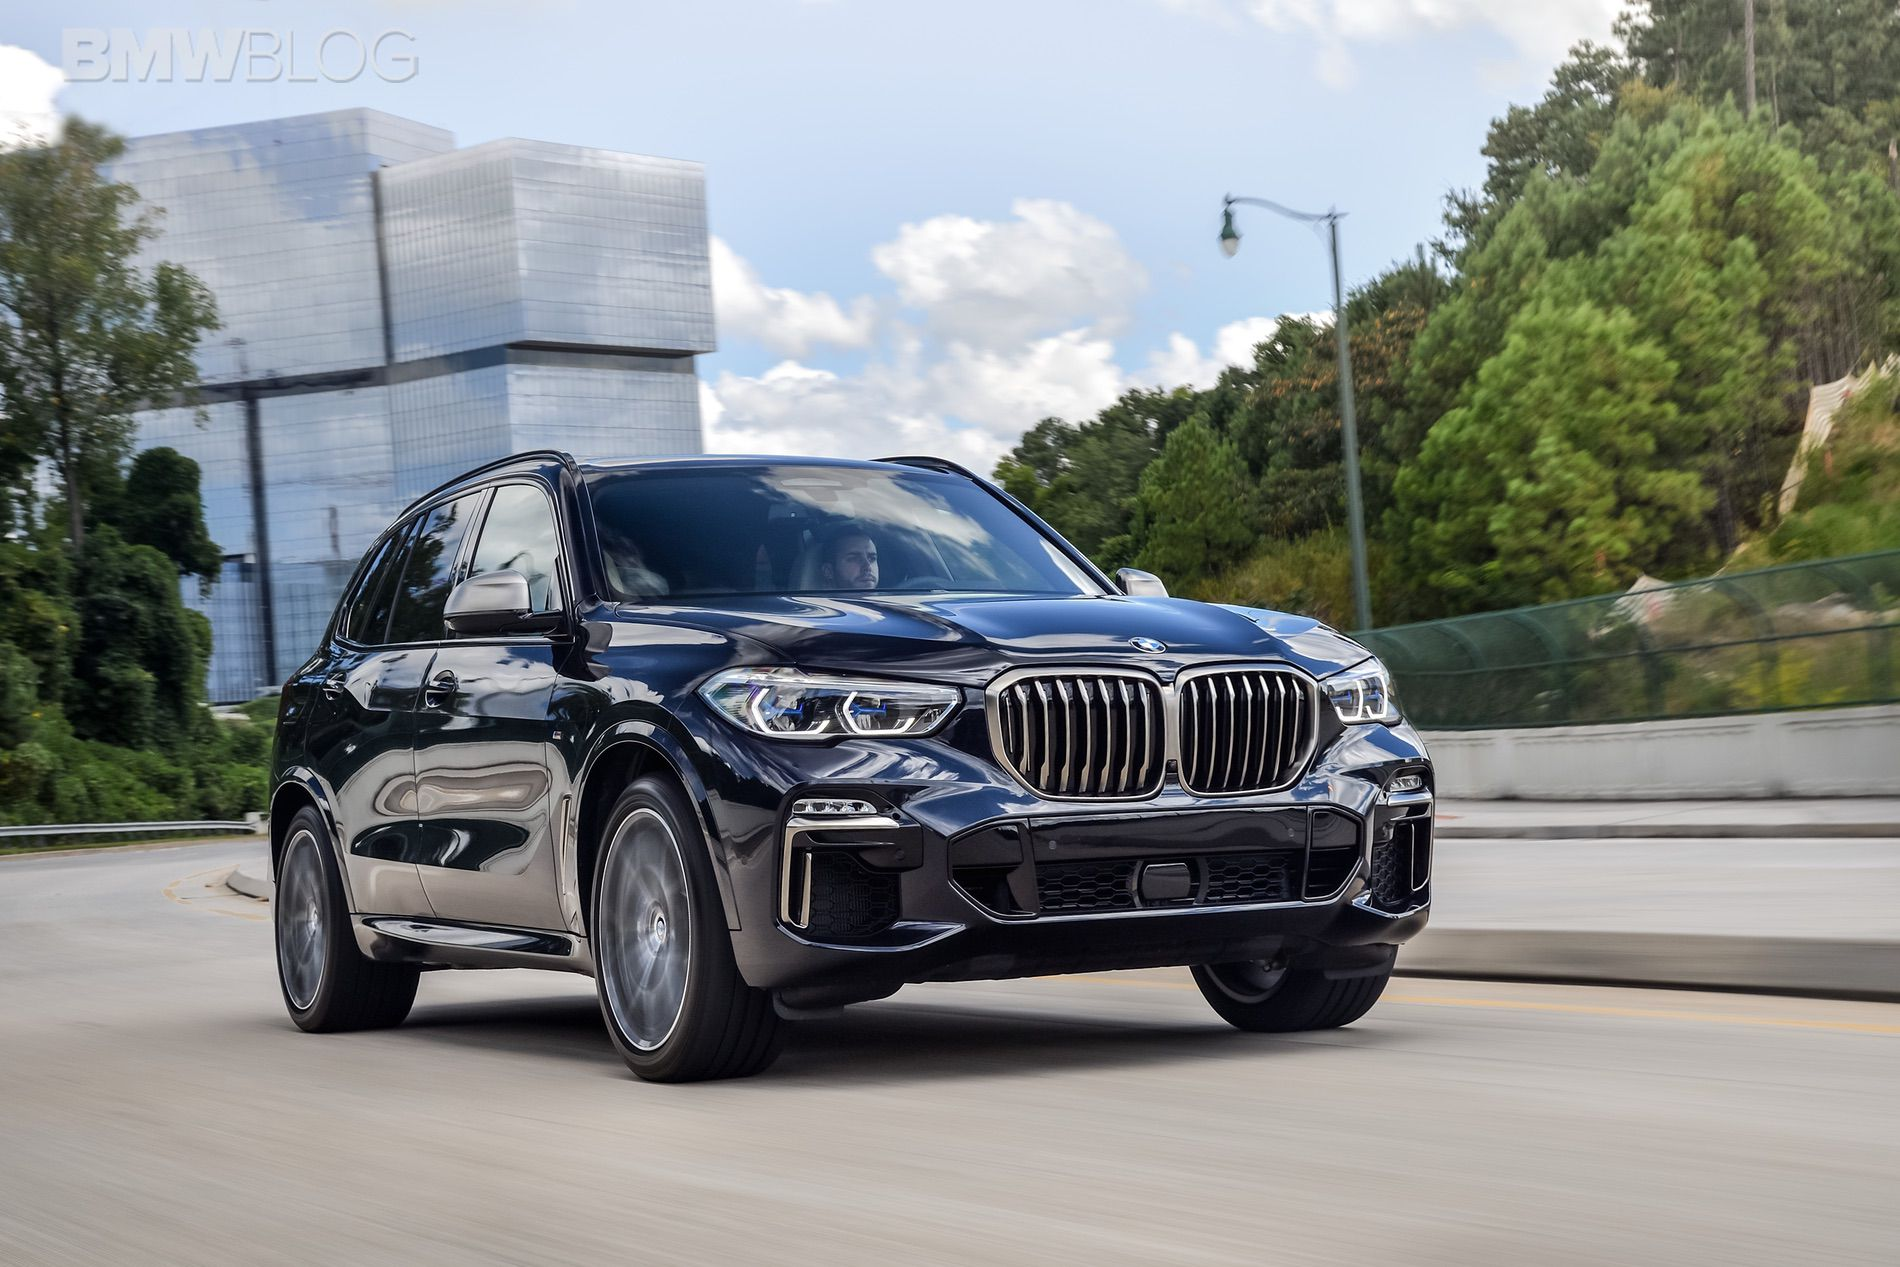 bmw x7 vs bmw x5 photo comparison cars automobiles amazing reveal. Black Bedroom Furniture Sets. Home Design Ideas